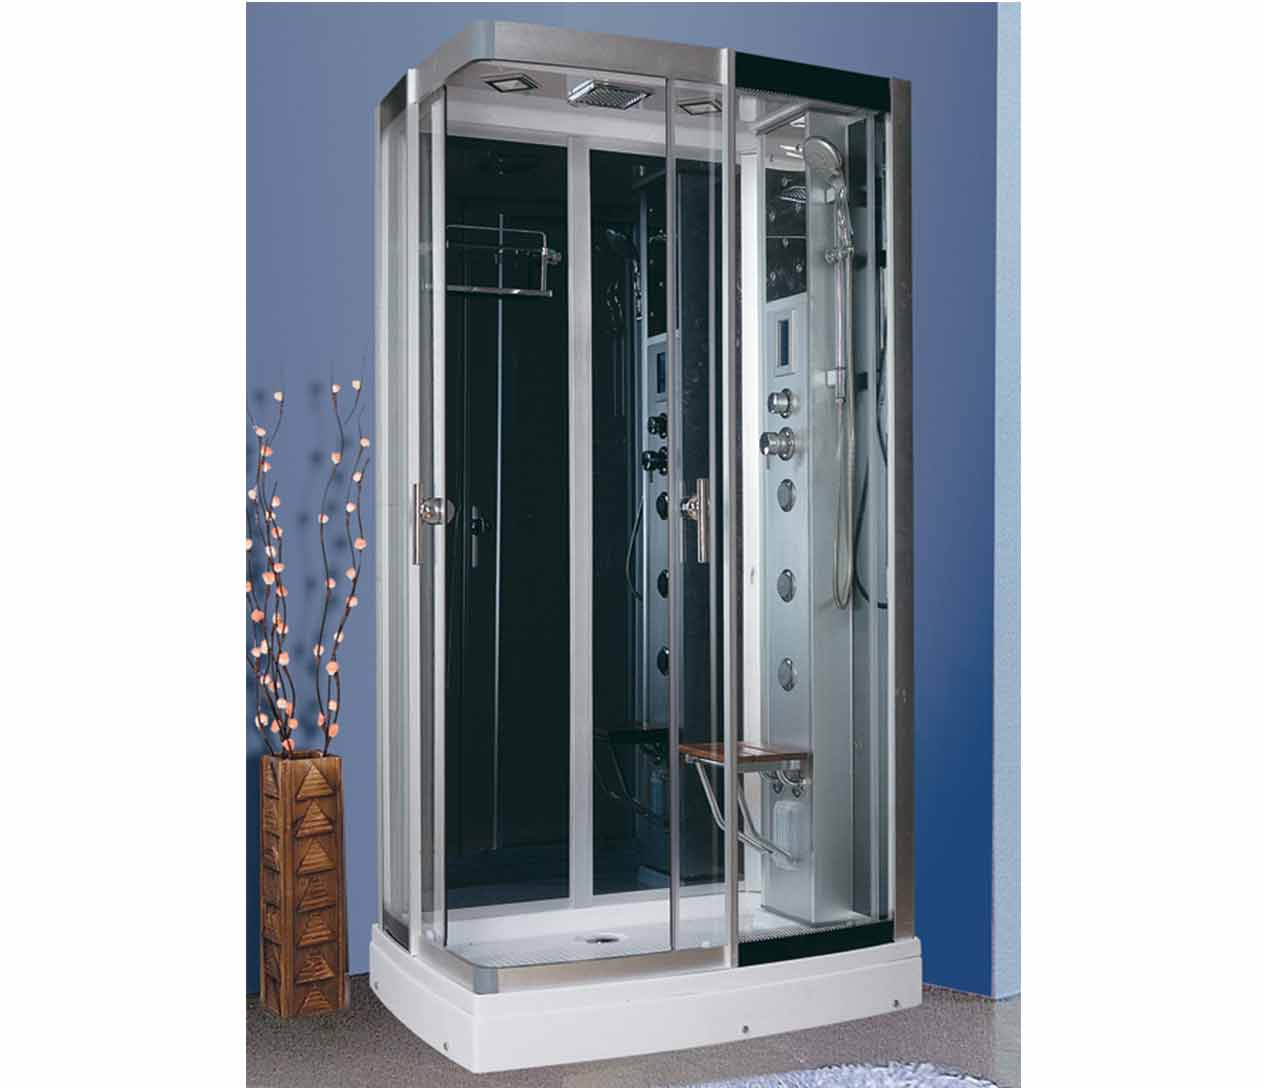 Ax 406 steam shower luxury spas inc - Luxury steam showers ...